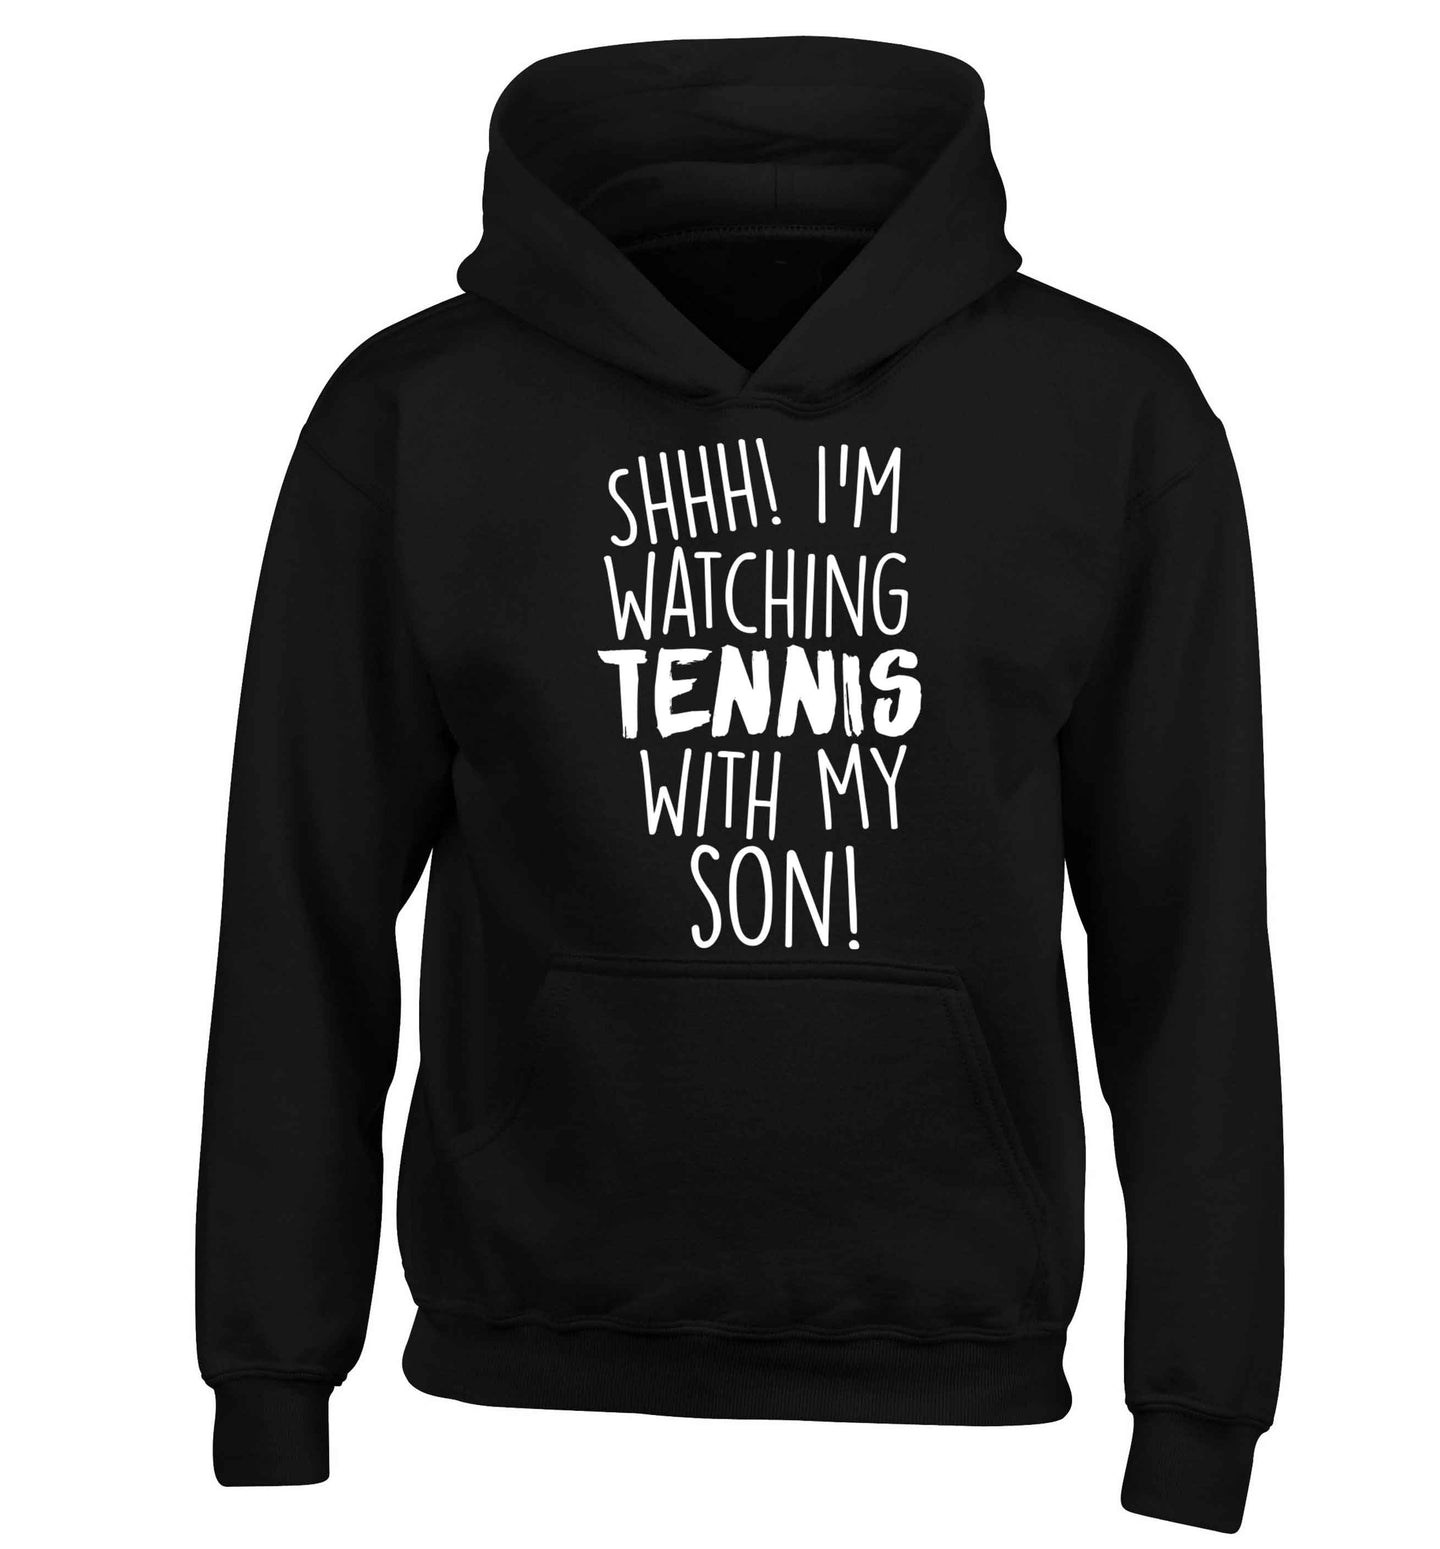 Shh! I'm watching tennis with my son! children's black hoodie 12-13 Years